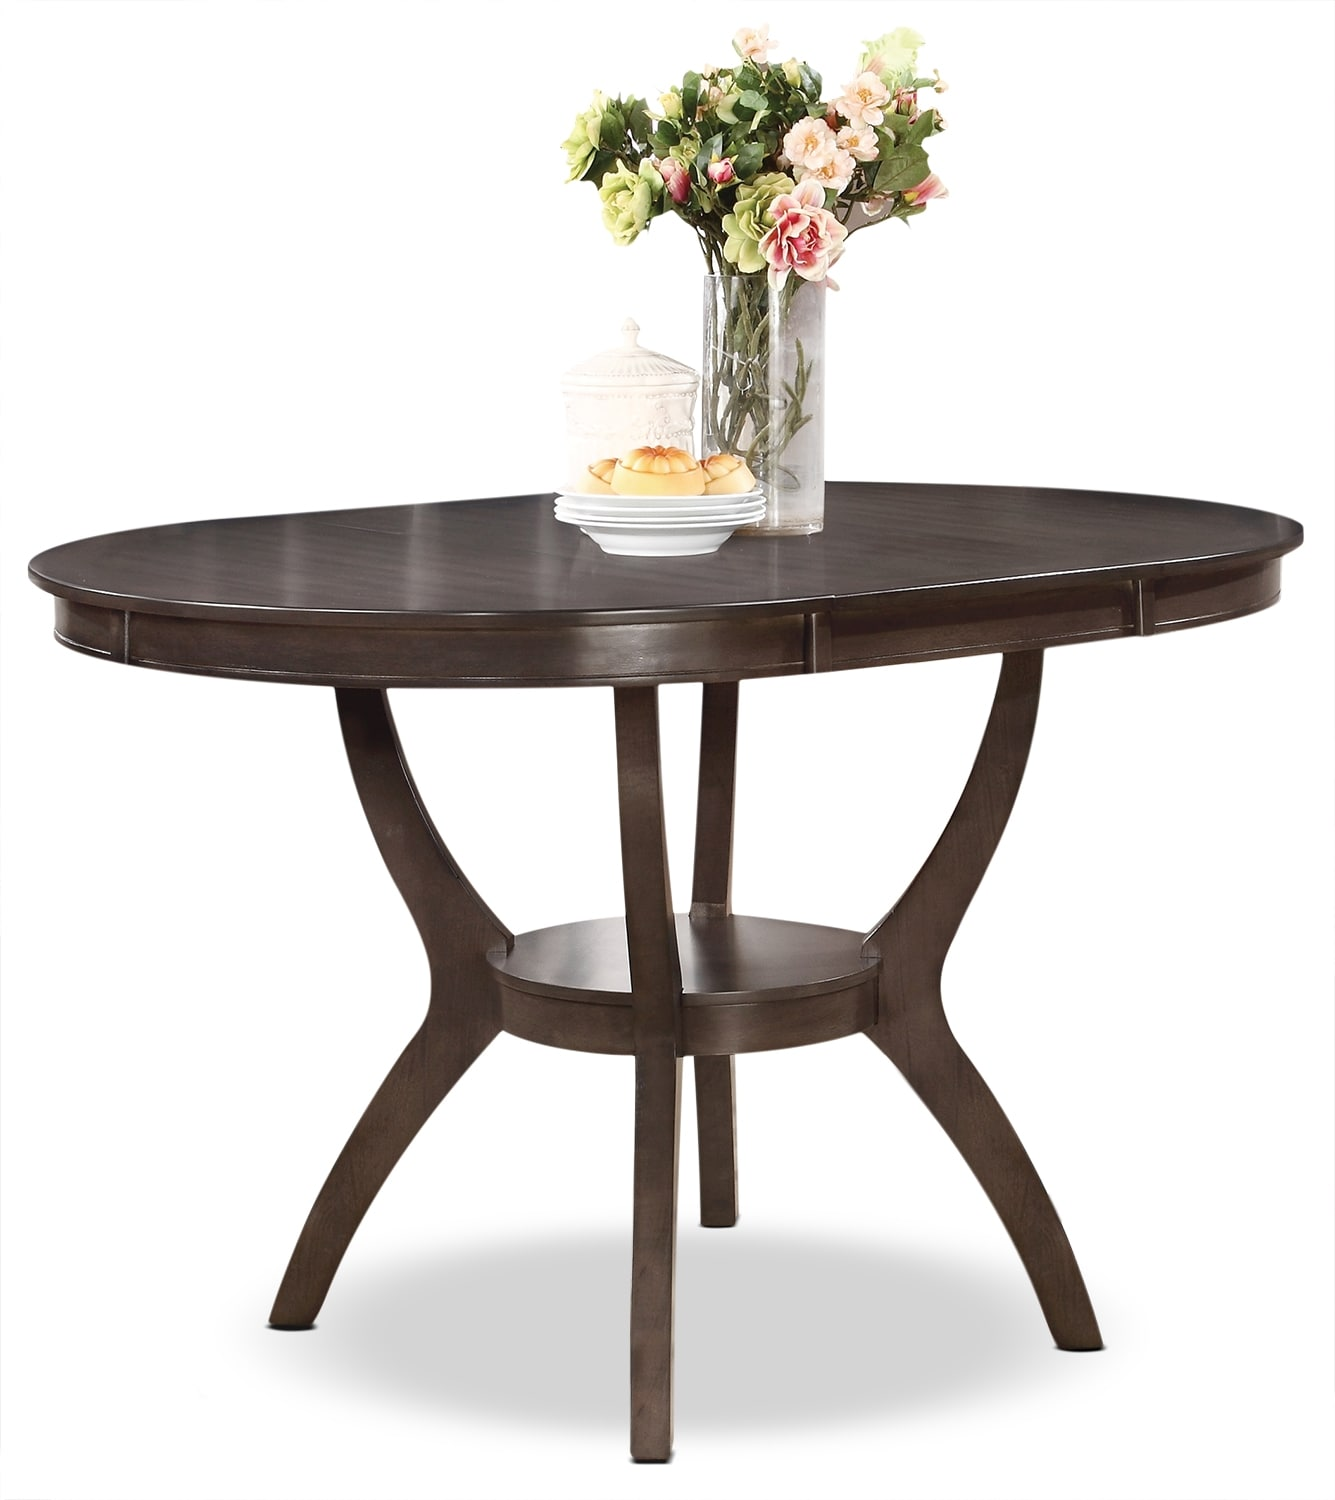 Dining Room Furniture - Adell Counter-Height Dining Table - Brown-Grey